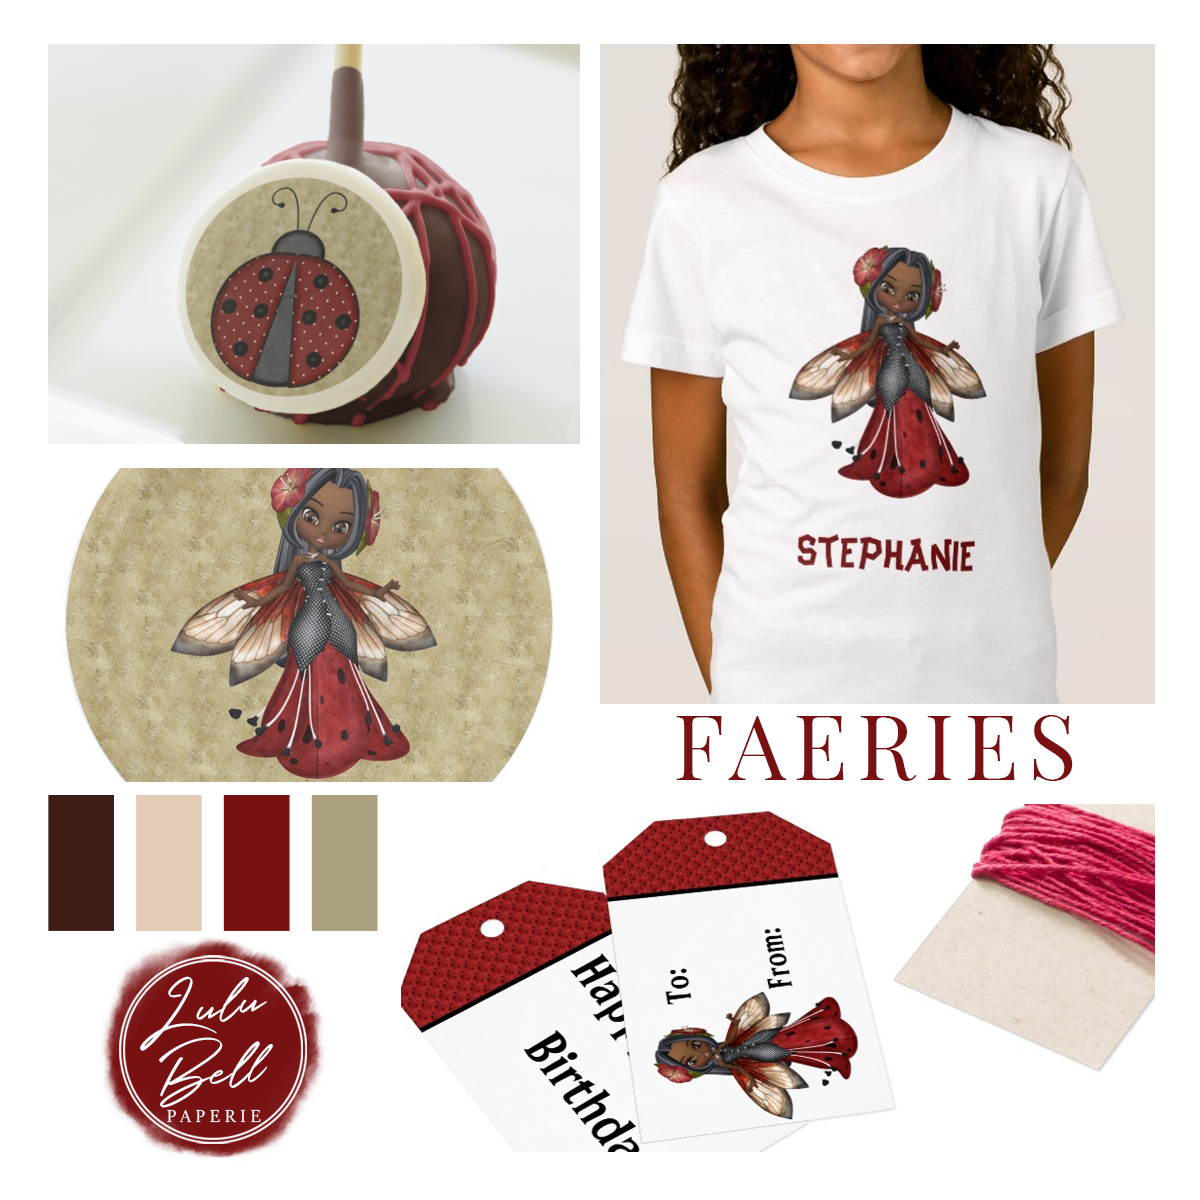 African American ladybug fairy girl's birthday party suite. Personalized apparel, invites, party decor, treats and apparel. In a red black and tan color palette.